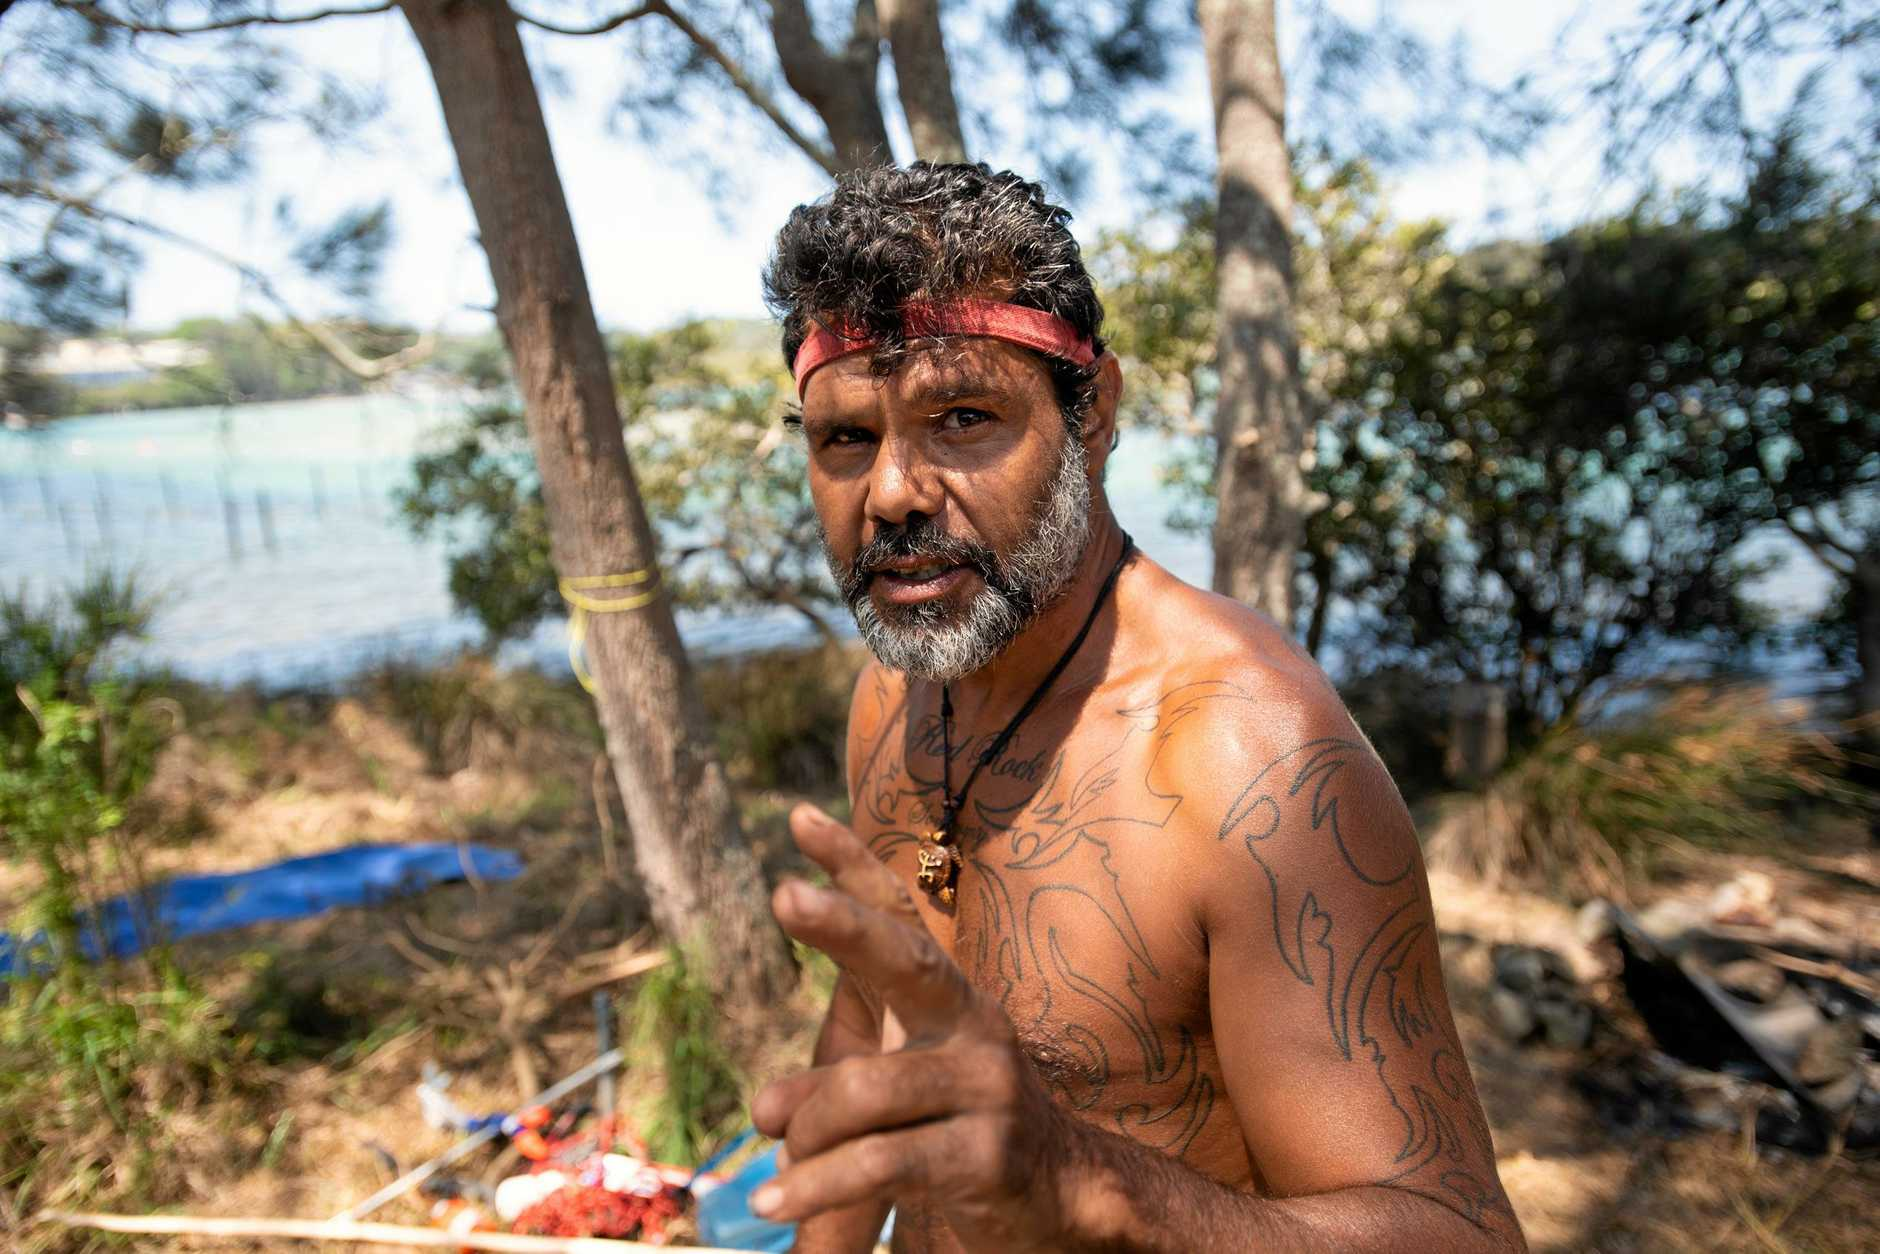 Buagin at his tent embassy on the  Nambucca river. 28 JAN 2019